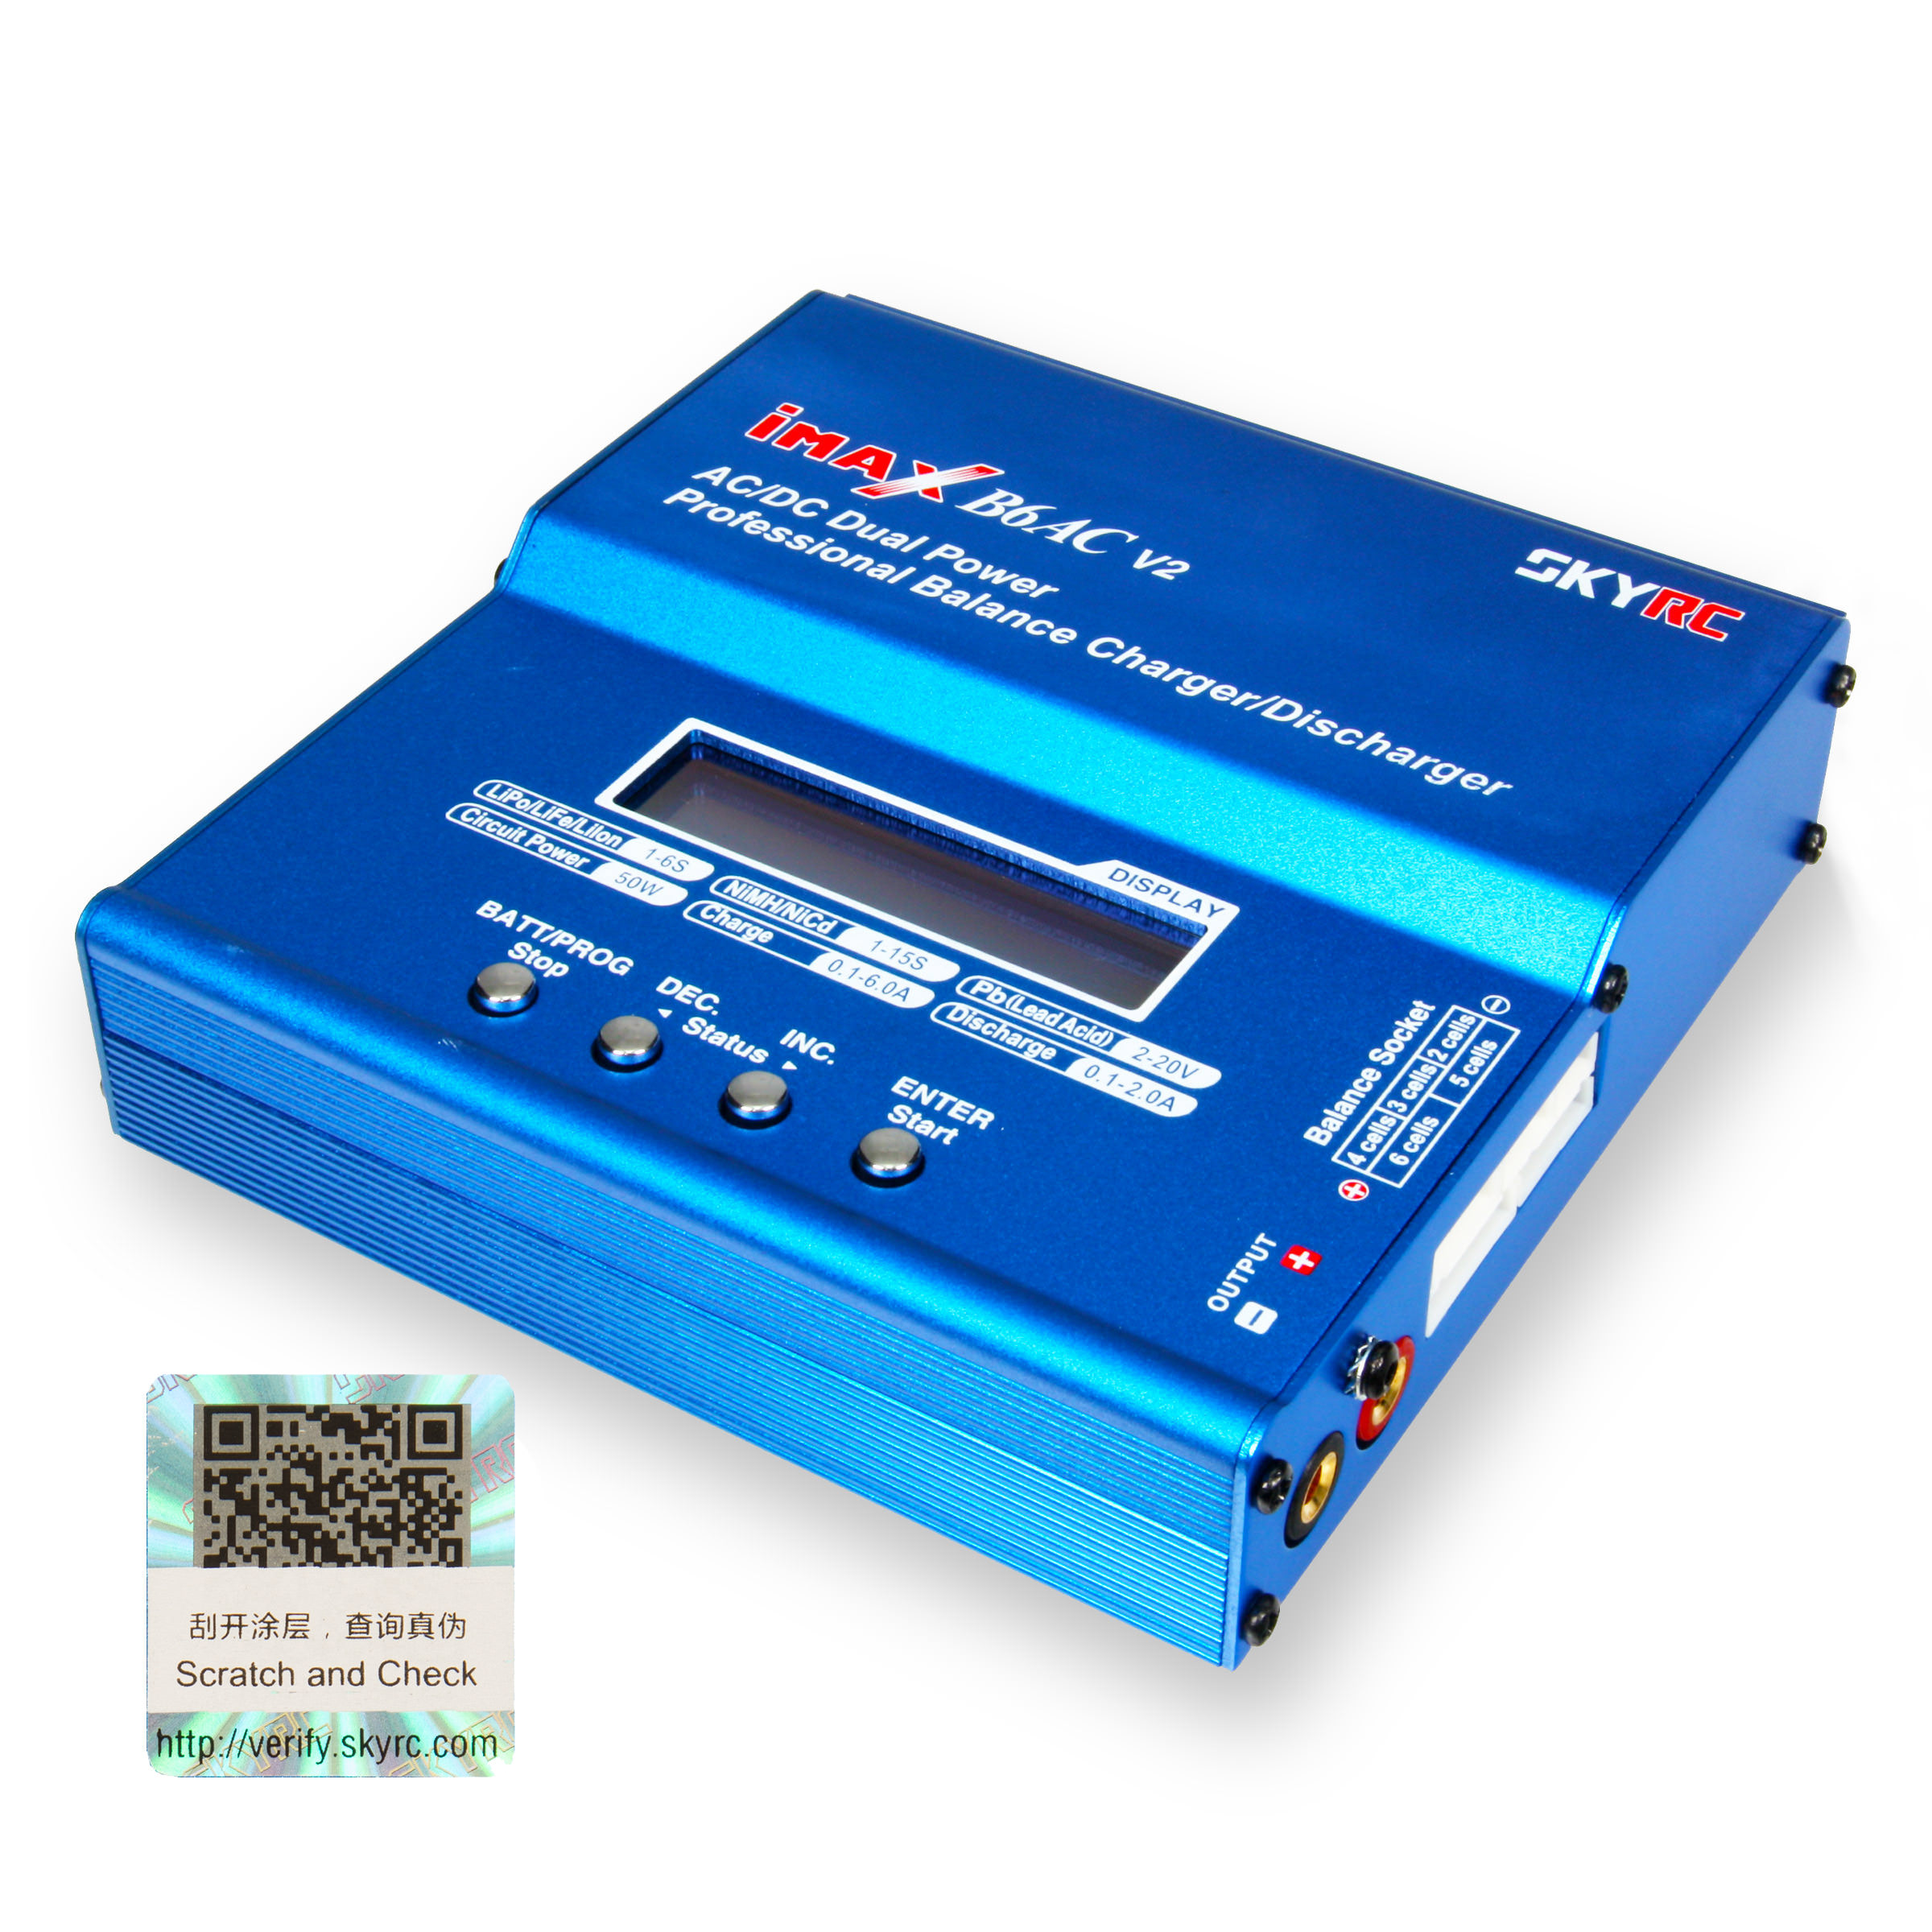 Skyrc Imax B6ac V2 Version 2 Digital Rc 3s Lipo Nimh Battery Balance Balancer Circuit Charger